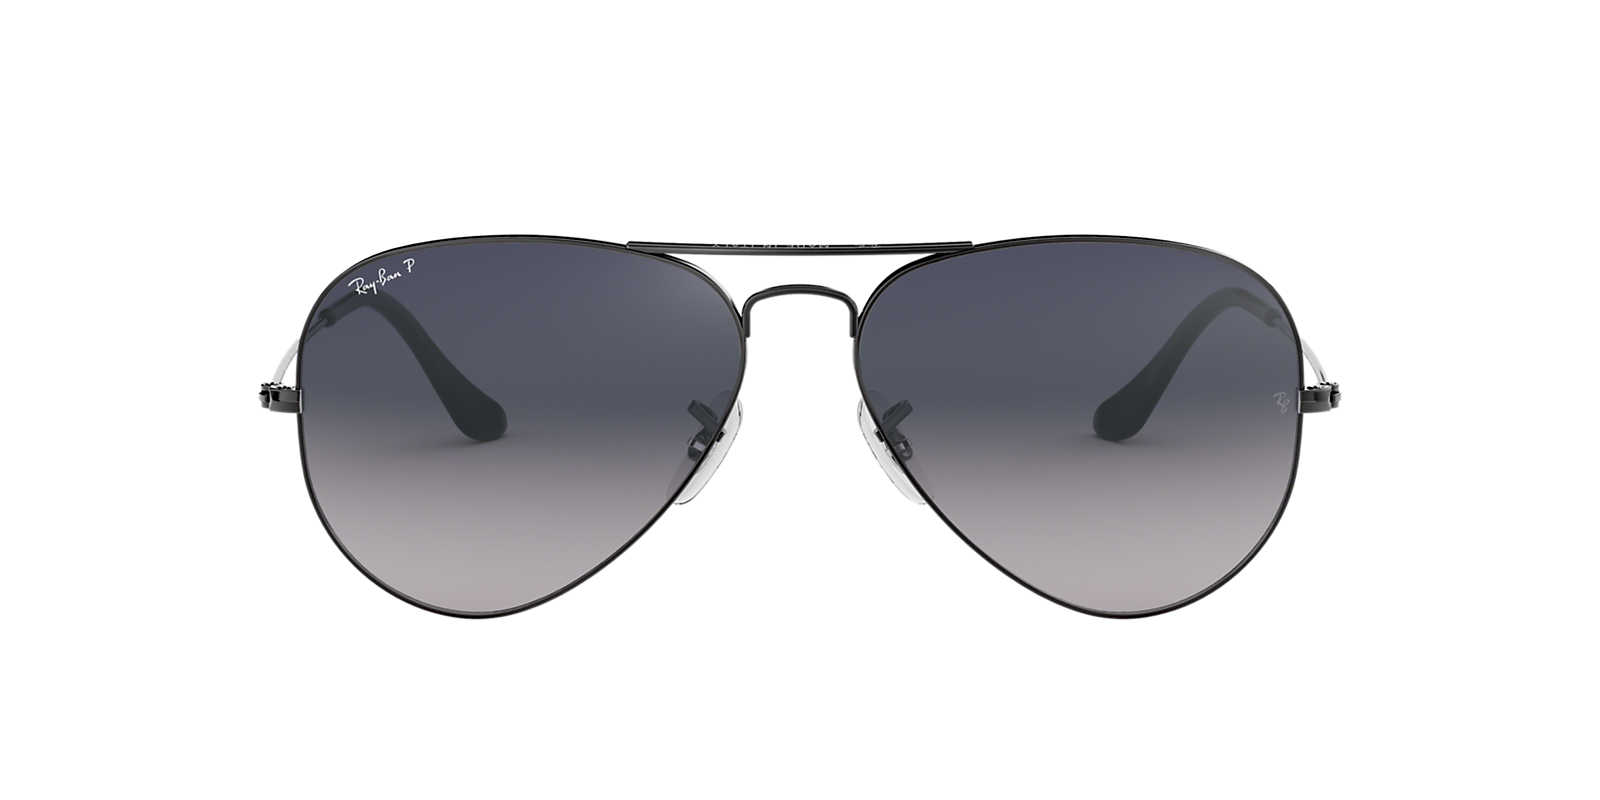 ray ban classic aviator uk  rb3025 58 original aviator rb3025 58 original aviator · ray ban